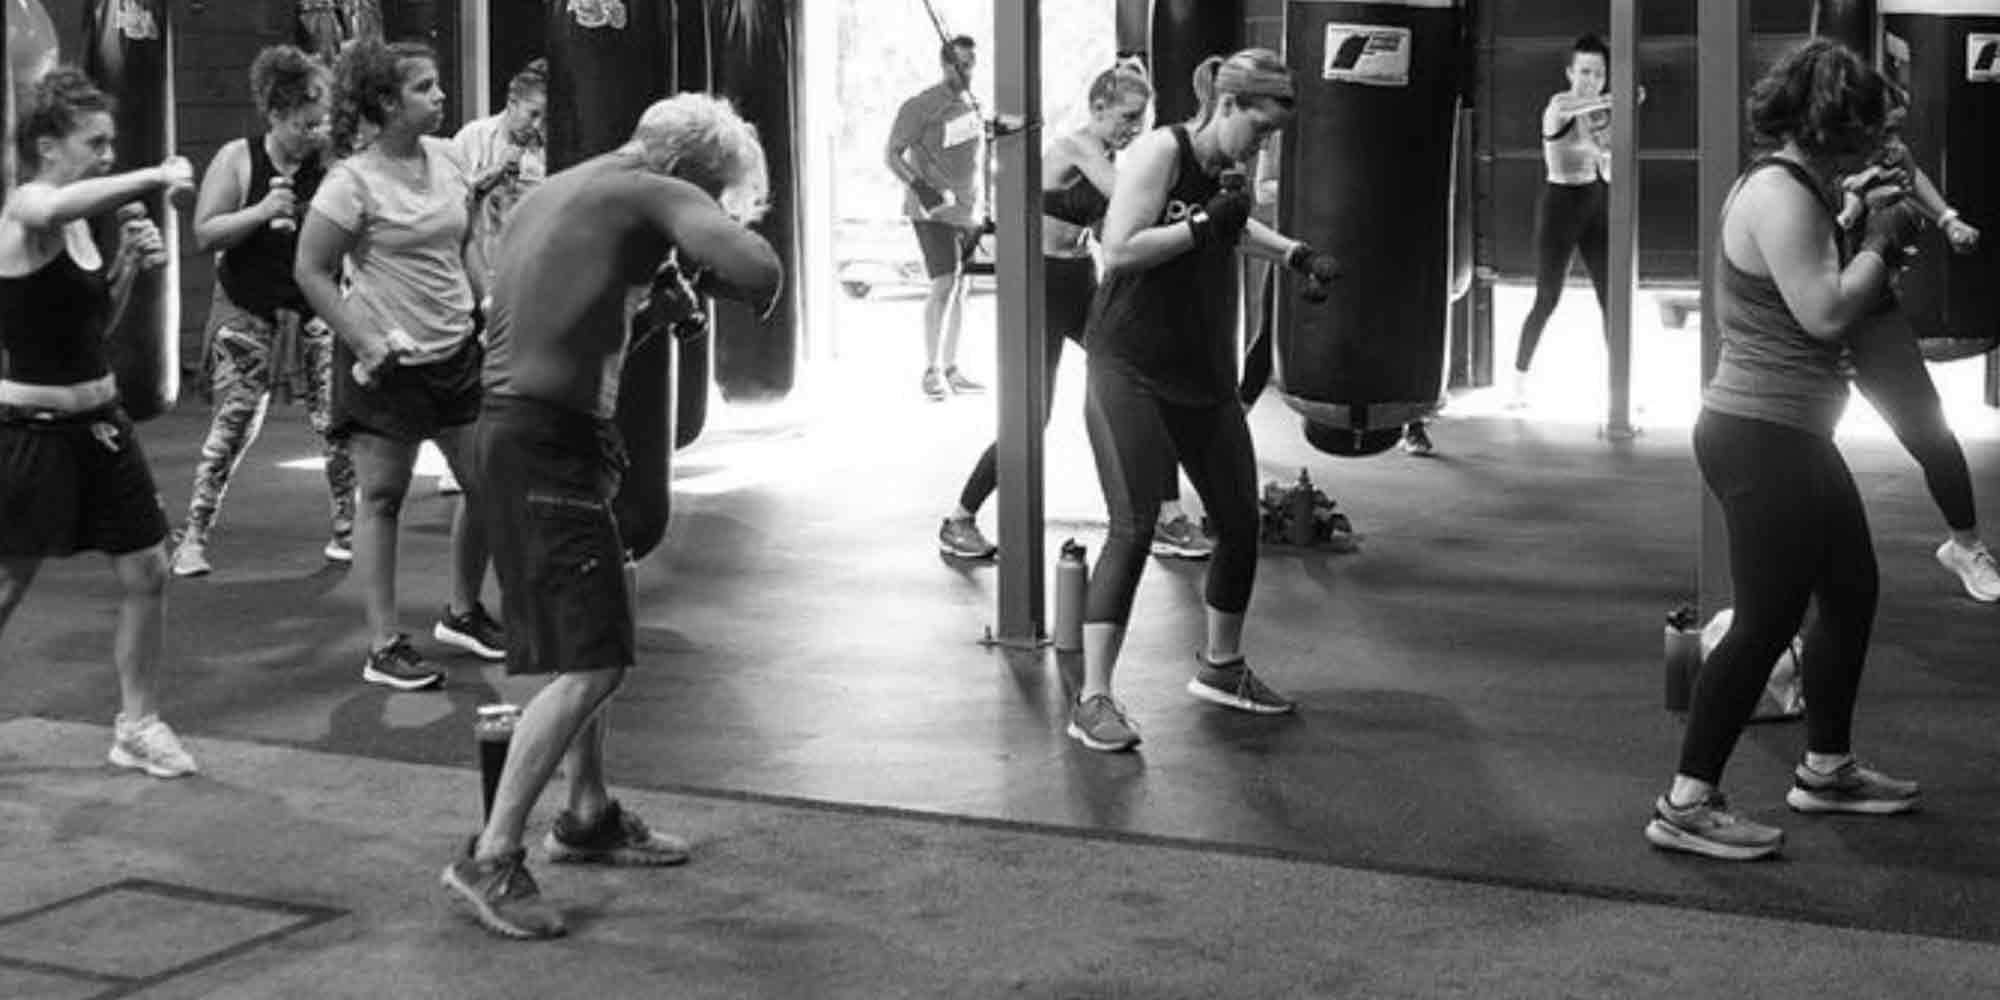 Elite boxing and fitness gym in Columbia, MD offers fitness and self-defense classes for boxing, personal training, cardio fitness, weight loss and morning group fitness classes. Find fitness classes for kids in Columbia, Ellicott City, Howard County, Baltimore City, and Baltimore County, MD.